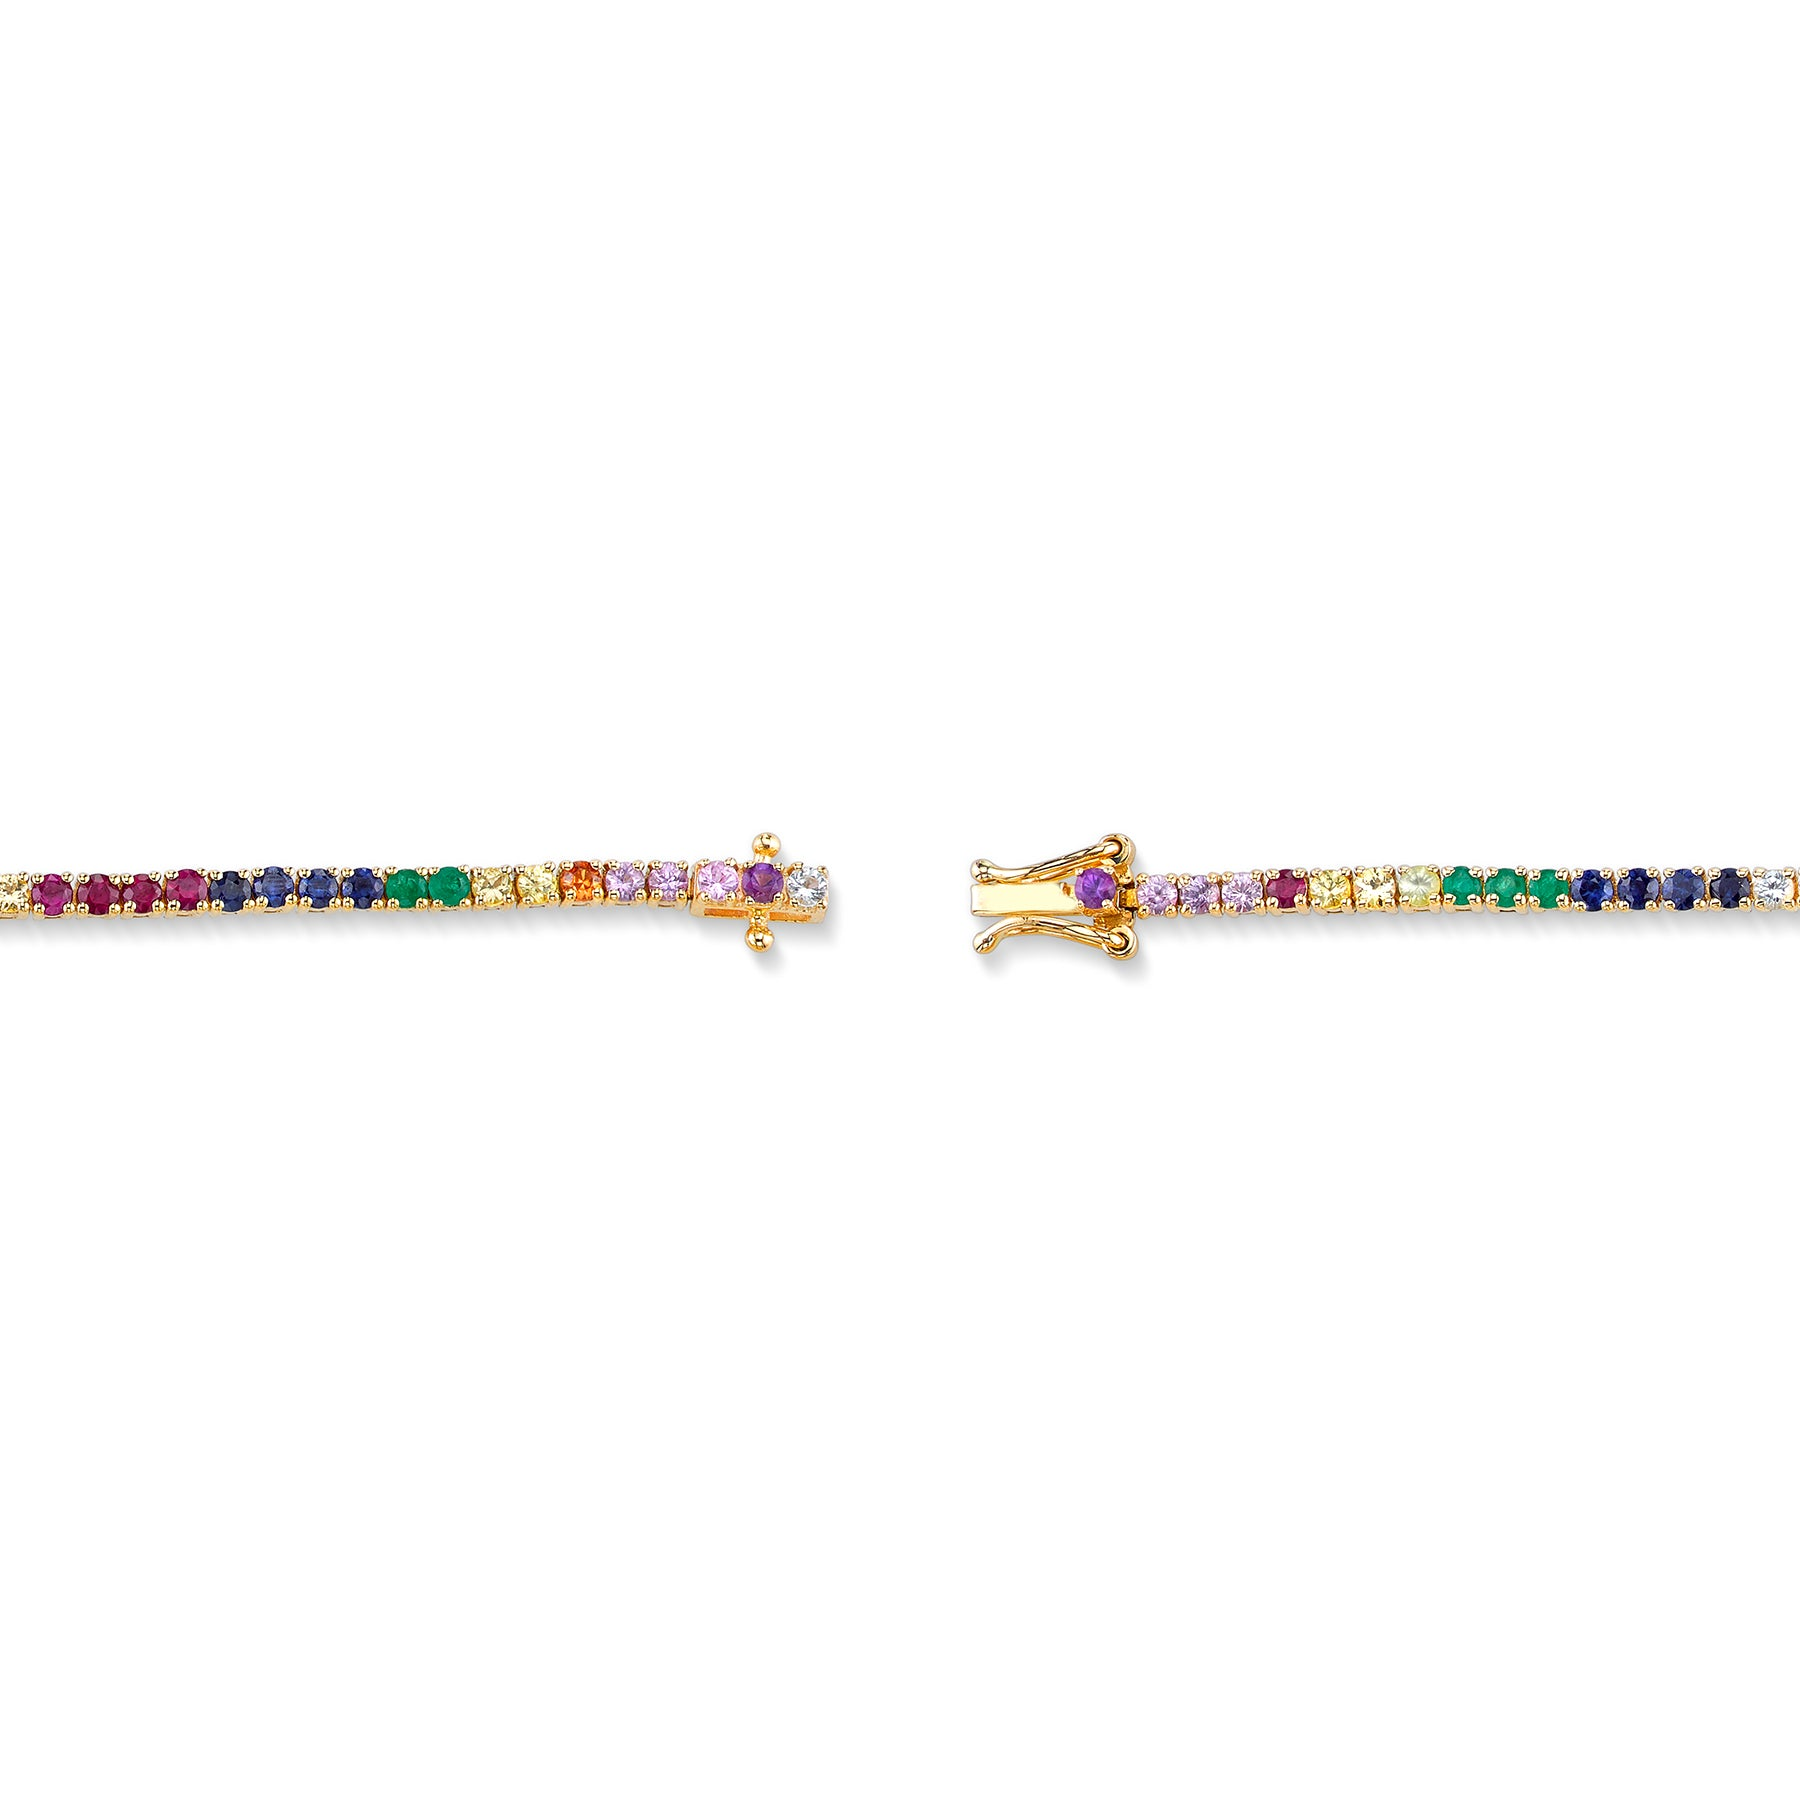 PERFECT RAINBOW TENNIS BRACELET